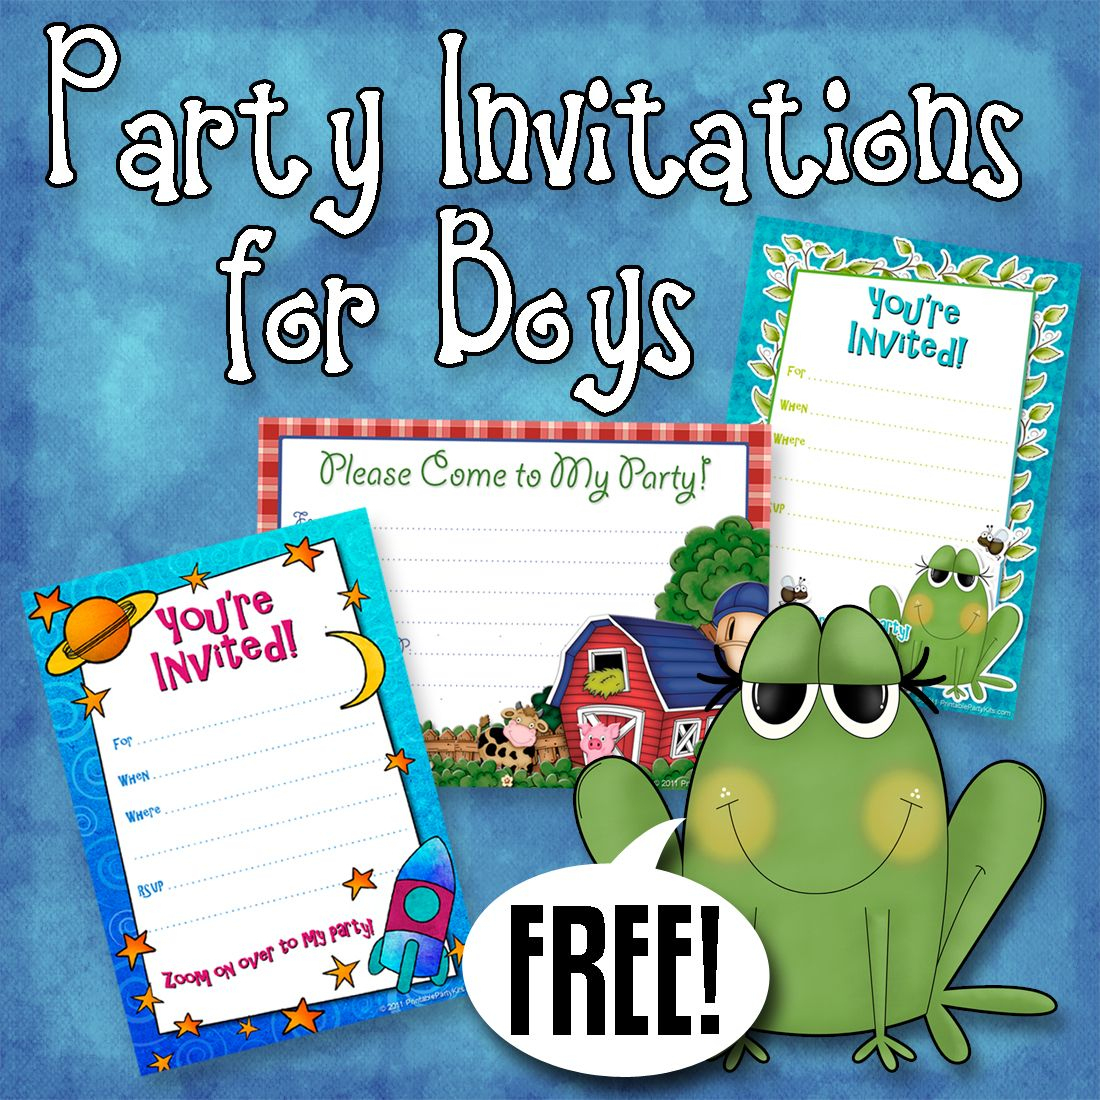 Free Printable Boys Birthday Party Invitations | Party Printables - Free Printable Toddler Birthday Invitations